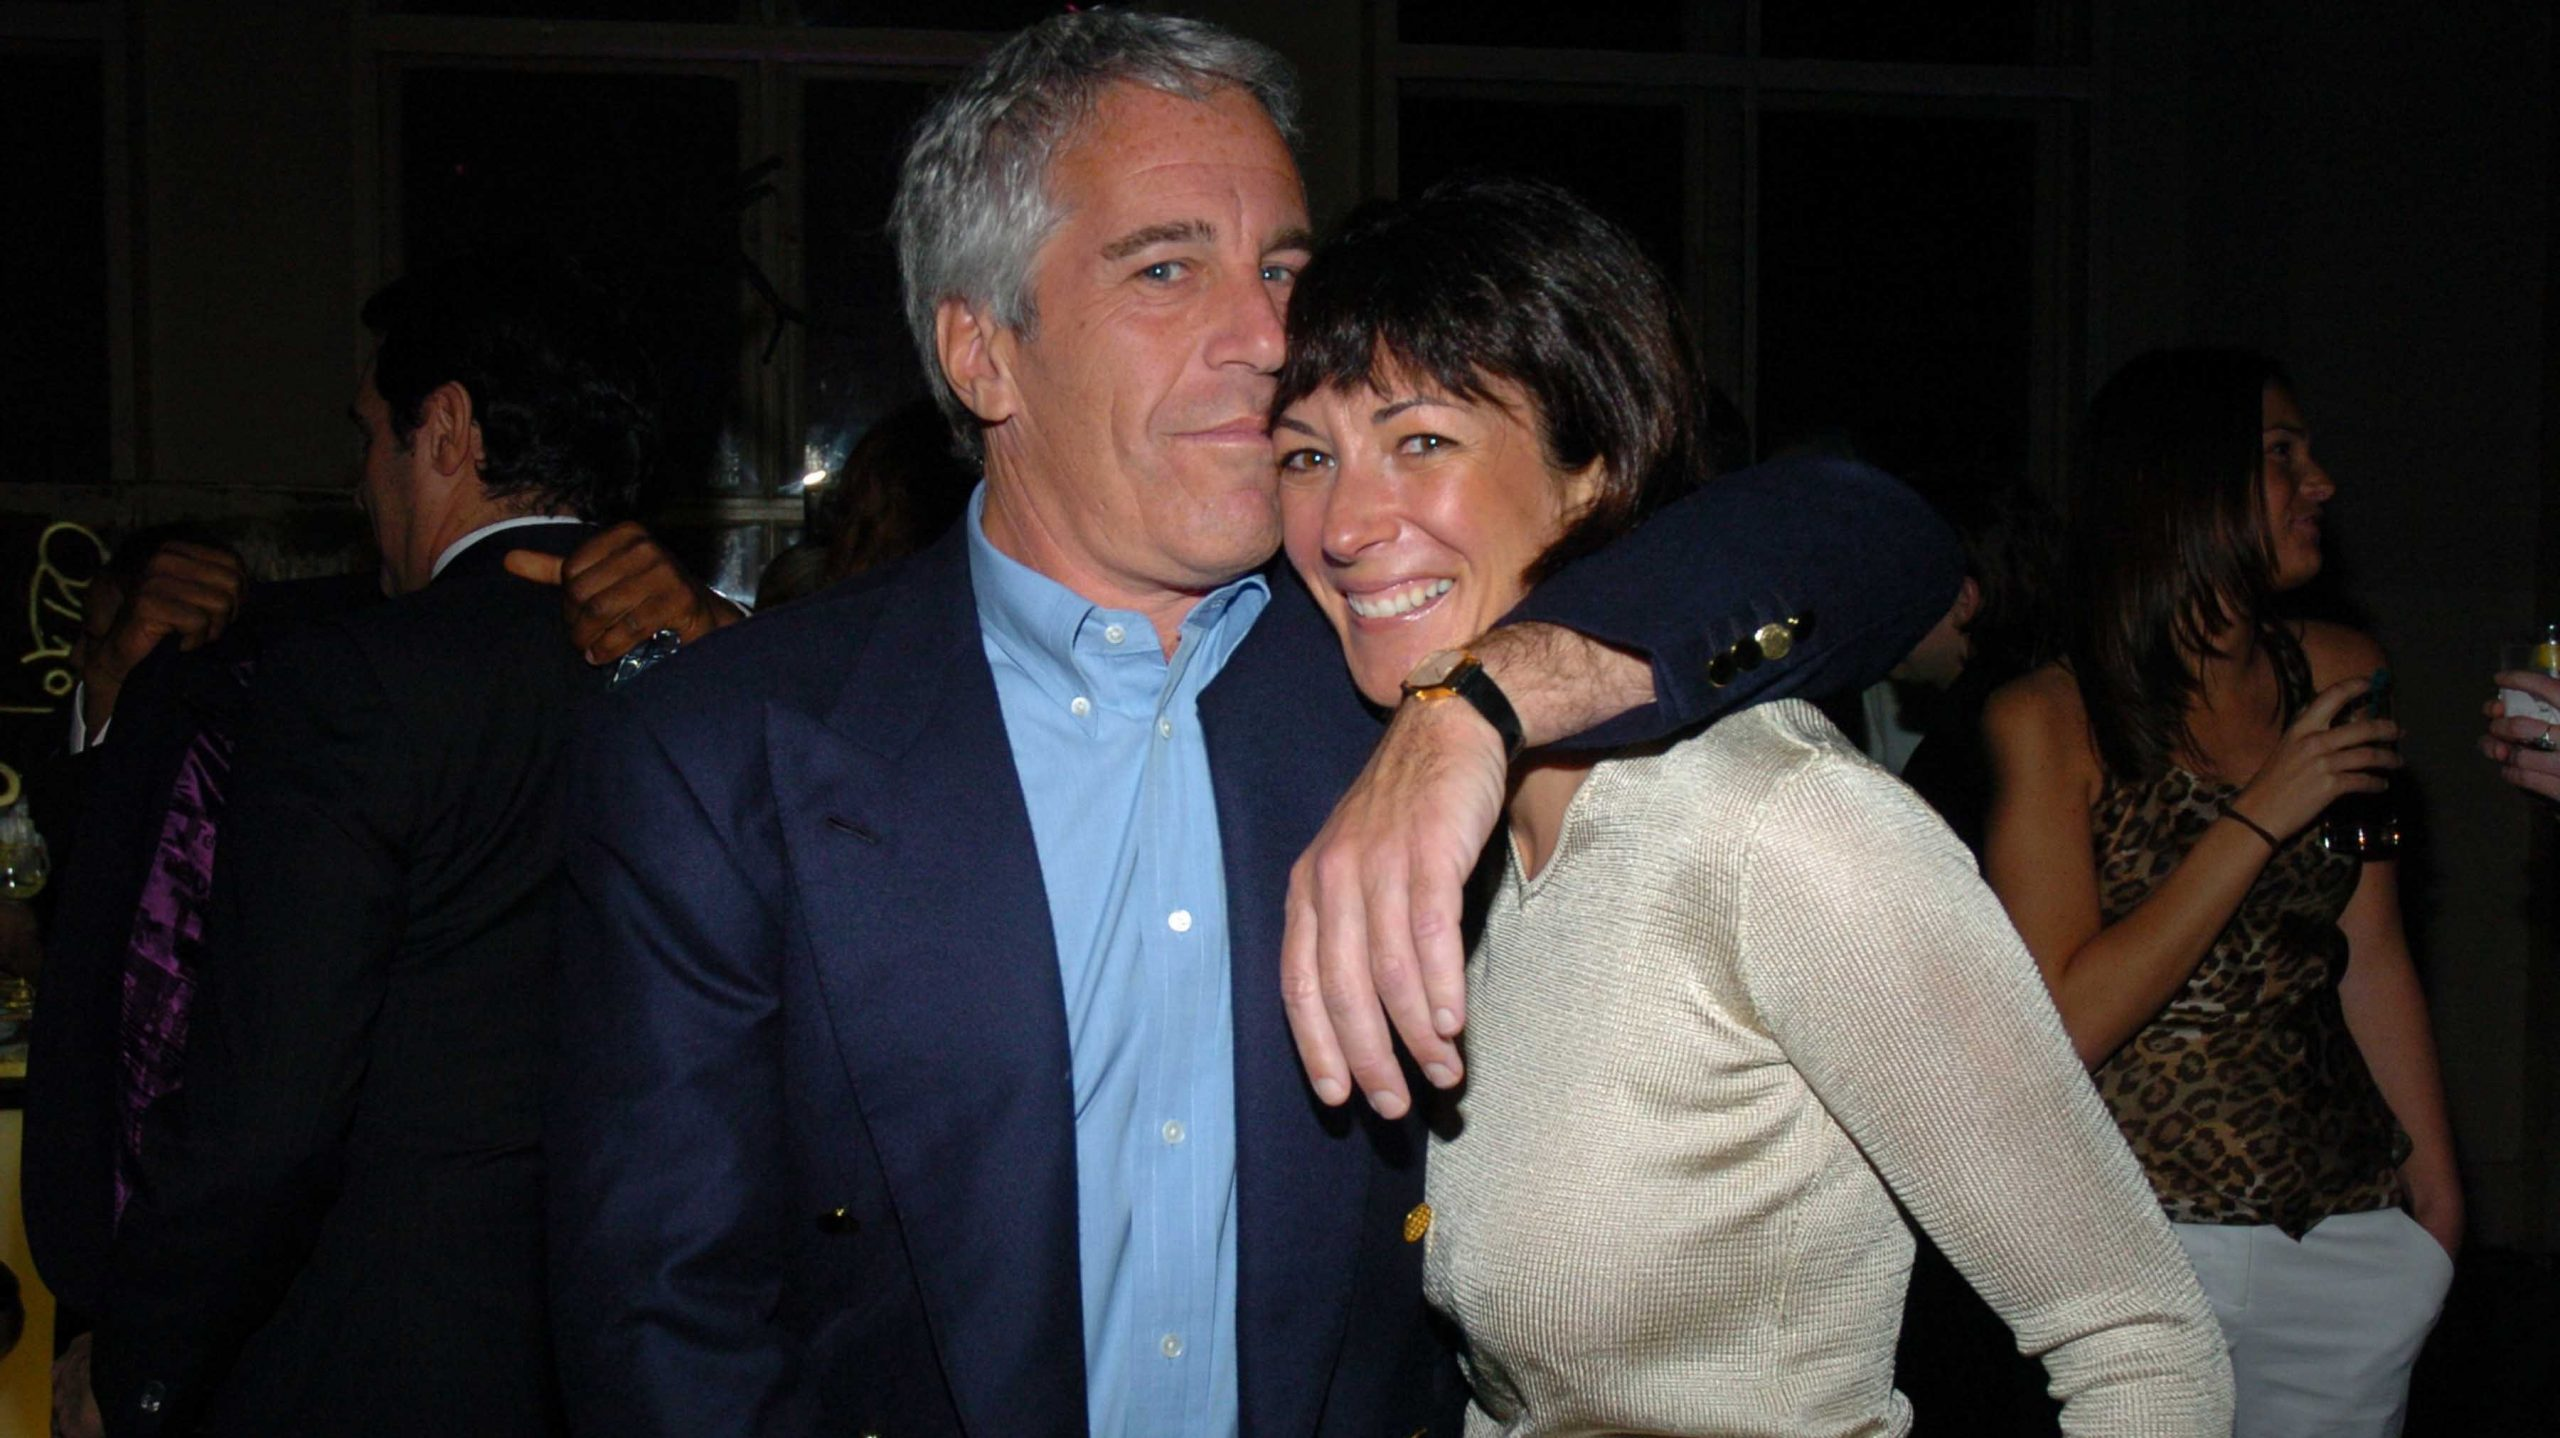 , Ghislaine Maxwell, the Woman Accused of Procuring Girls for Epstein, Is Reportedly Being Investigated by the FBI, Saubio Making Wealth